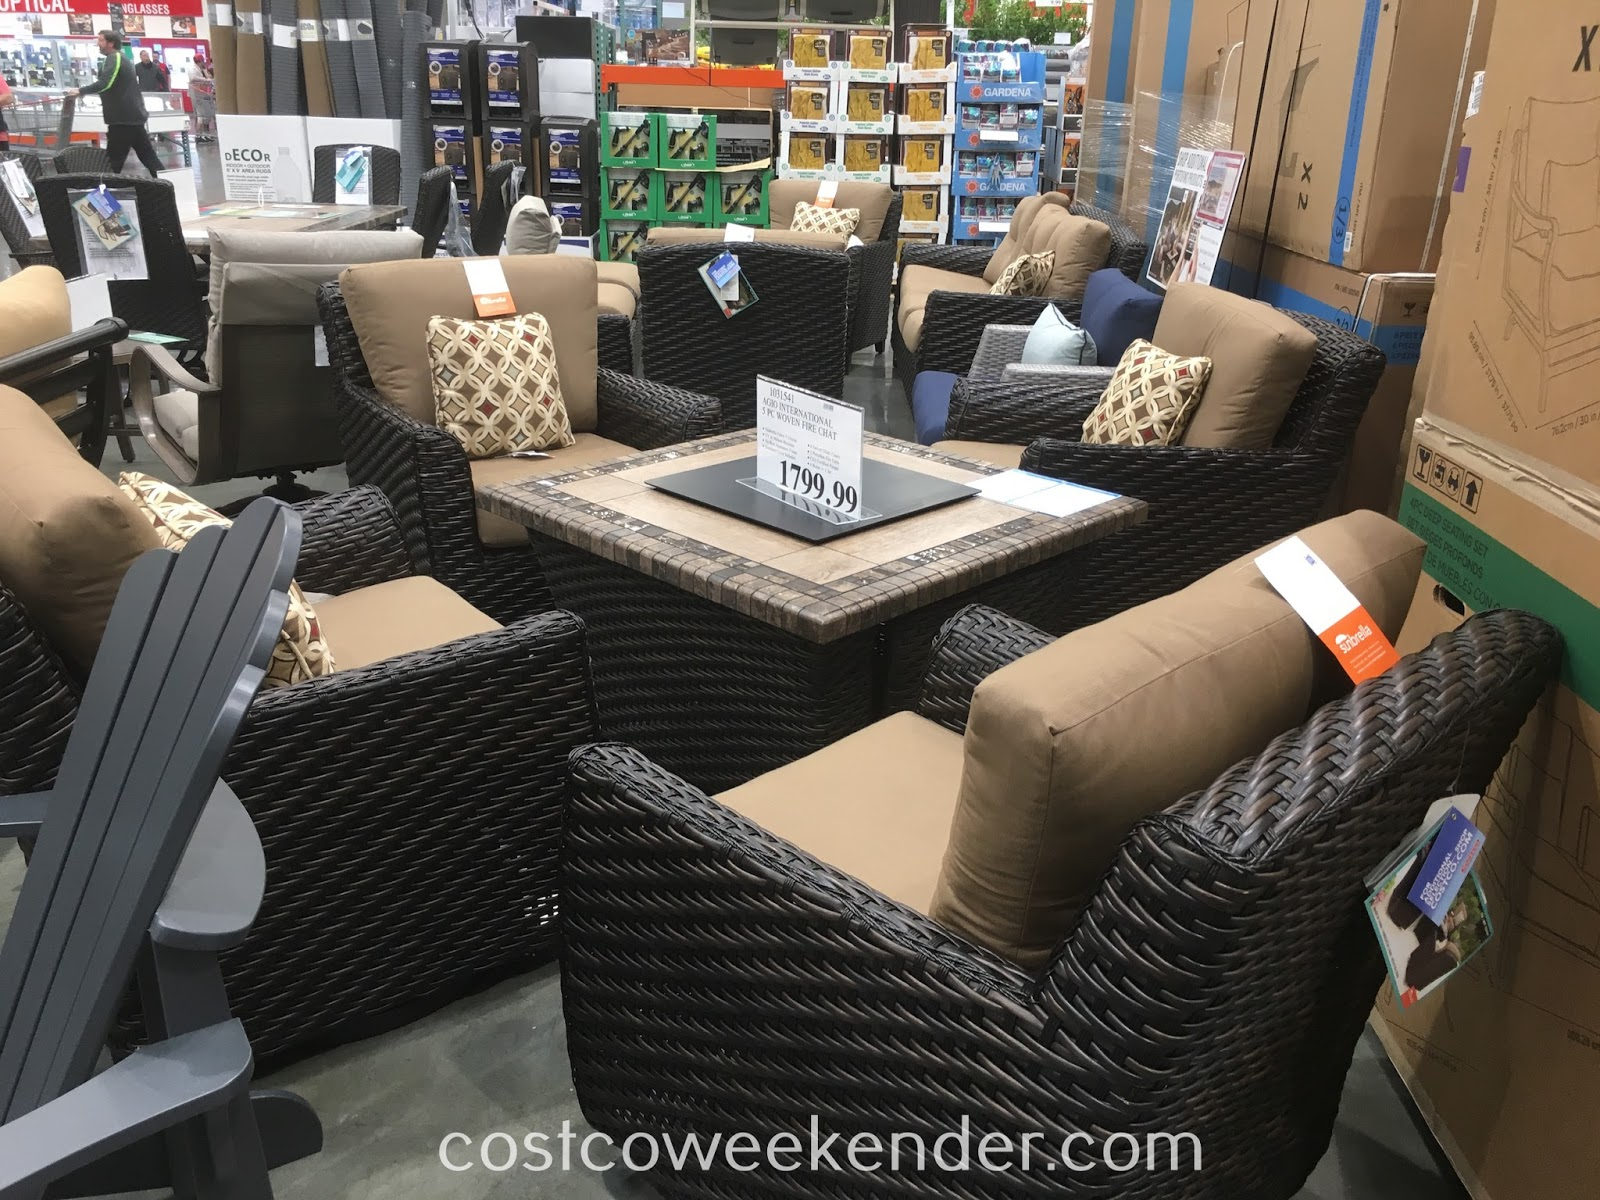 Lounge outside and stay warm with the Agio International 5pc Woven Fire Chat Set